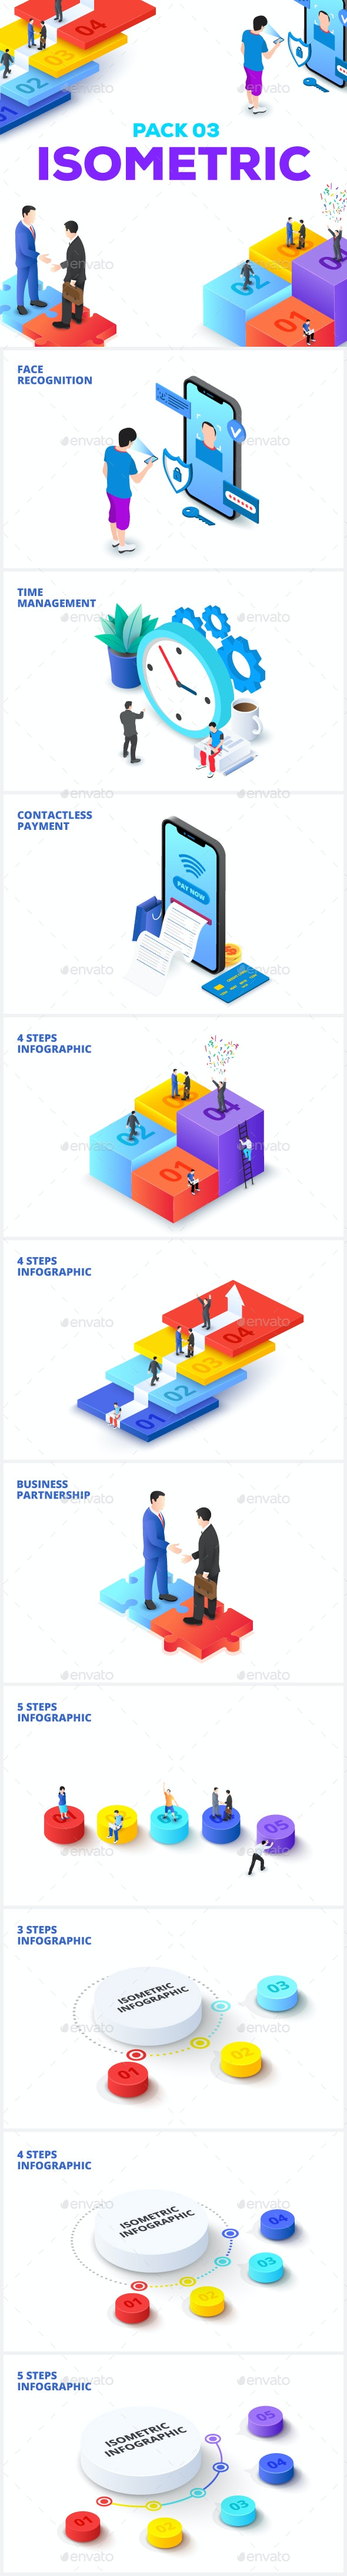 Isometric Pack 03 - Concepts Business